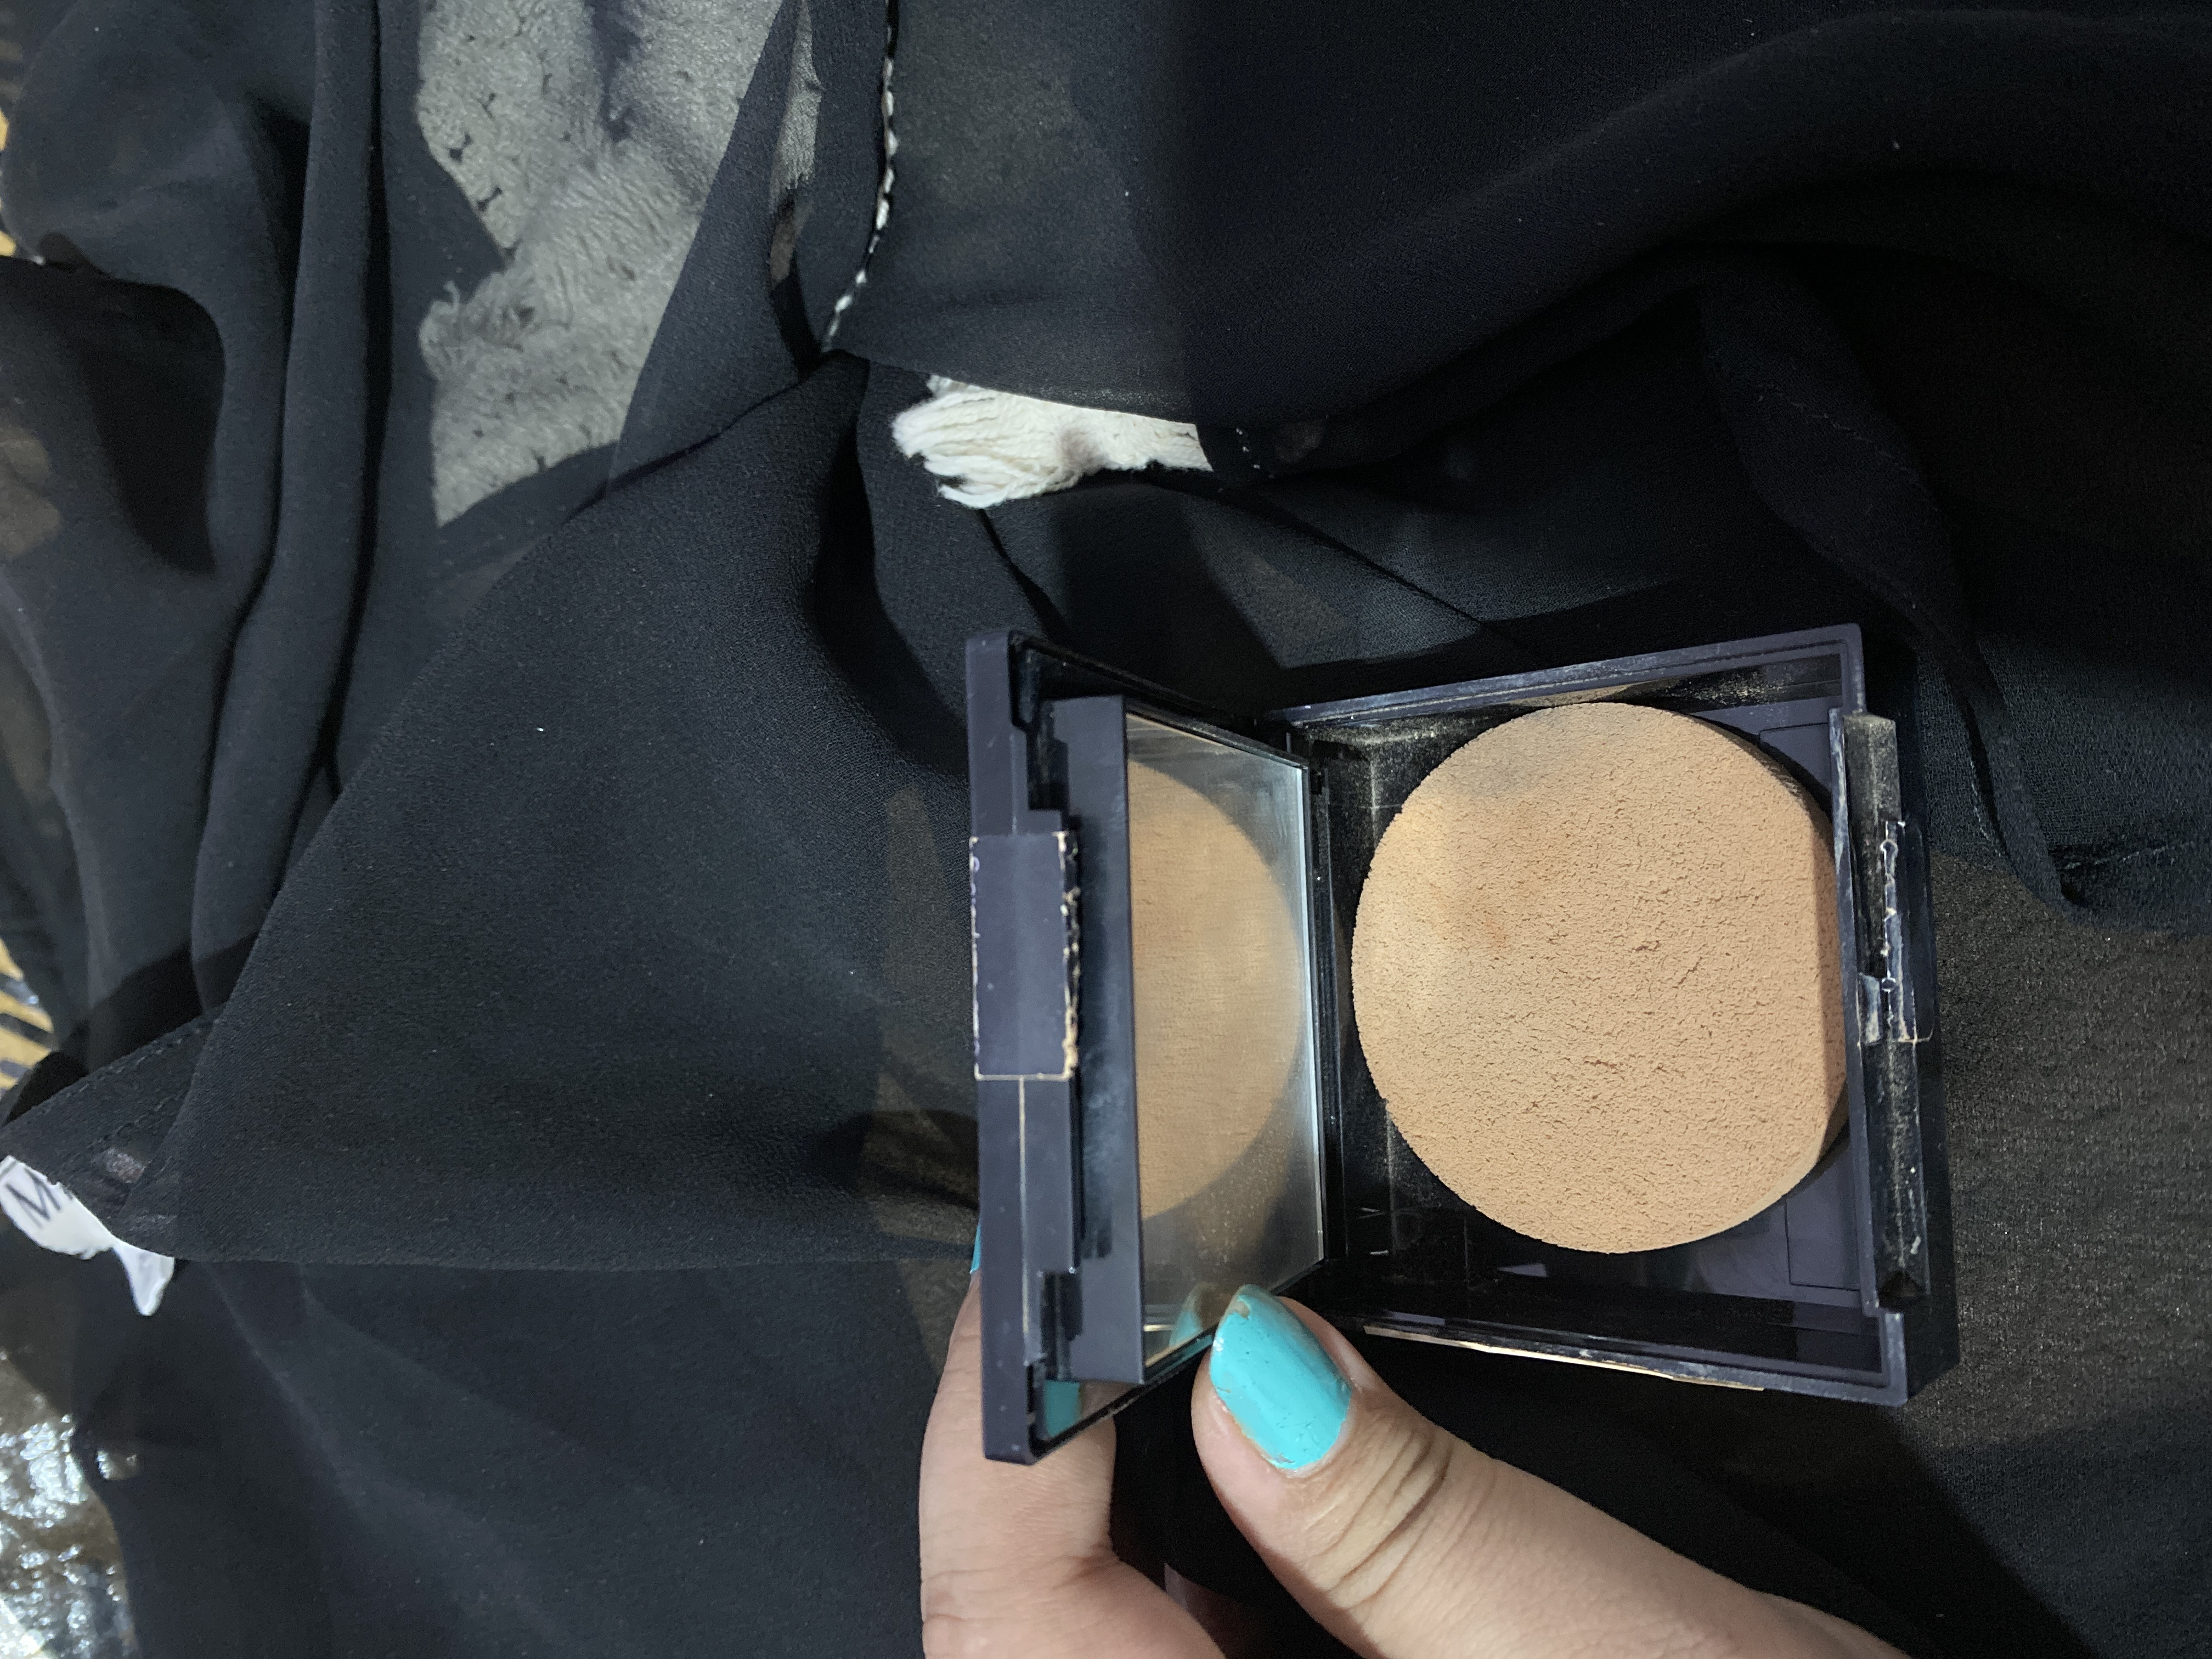 Maybelline Fit Me Matte And Poreless Powder-All in one compact-By shachi_sharma-2